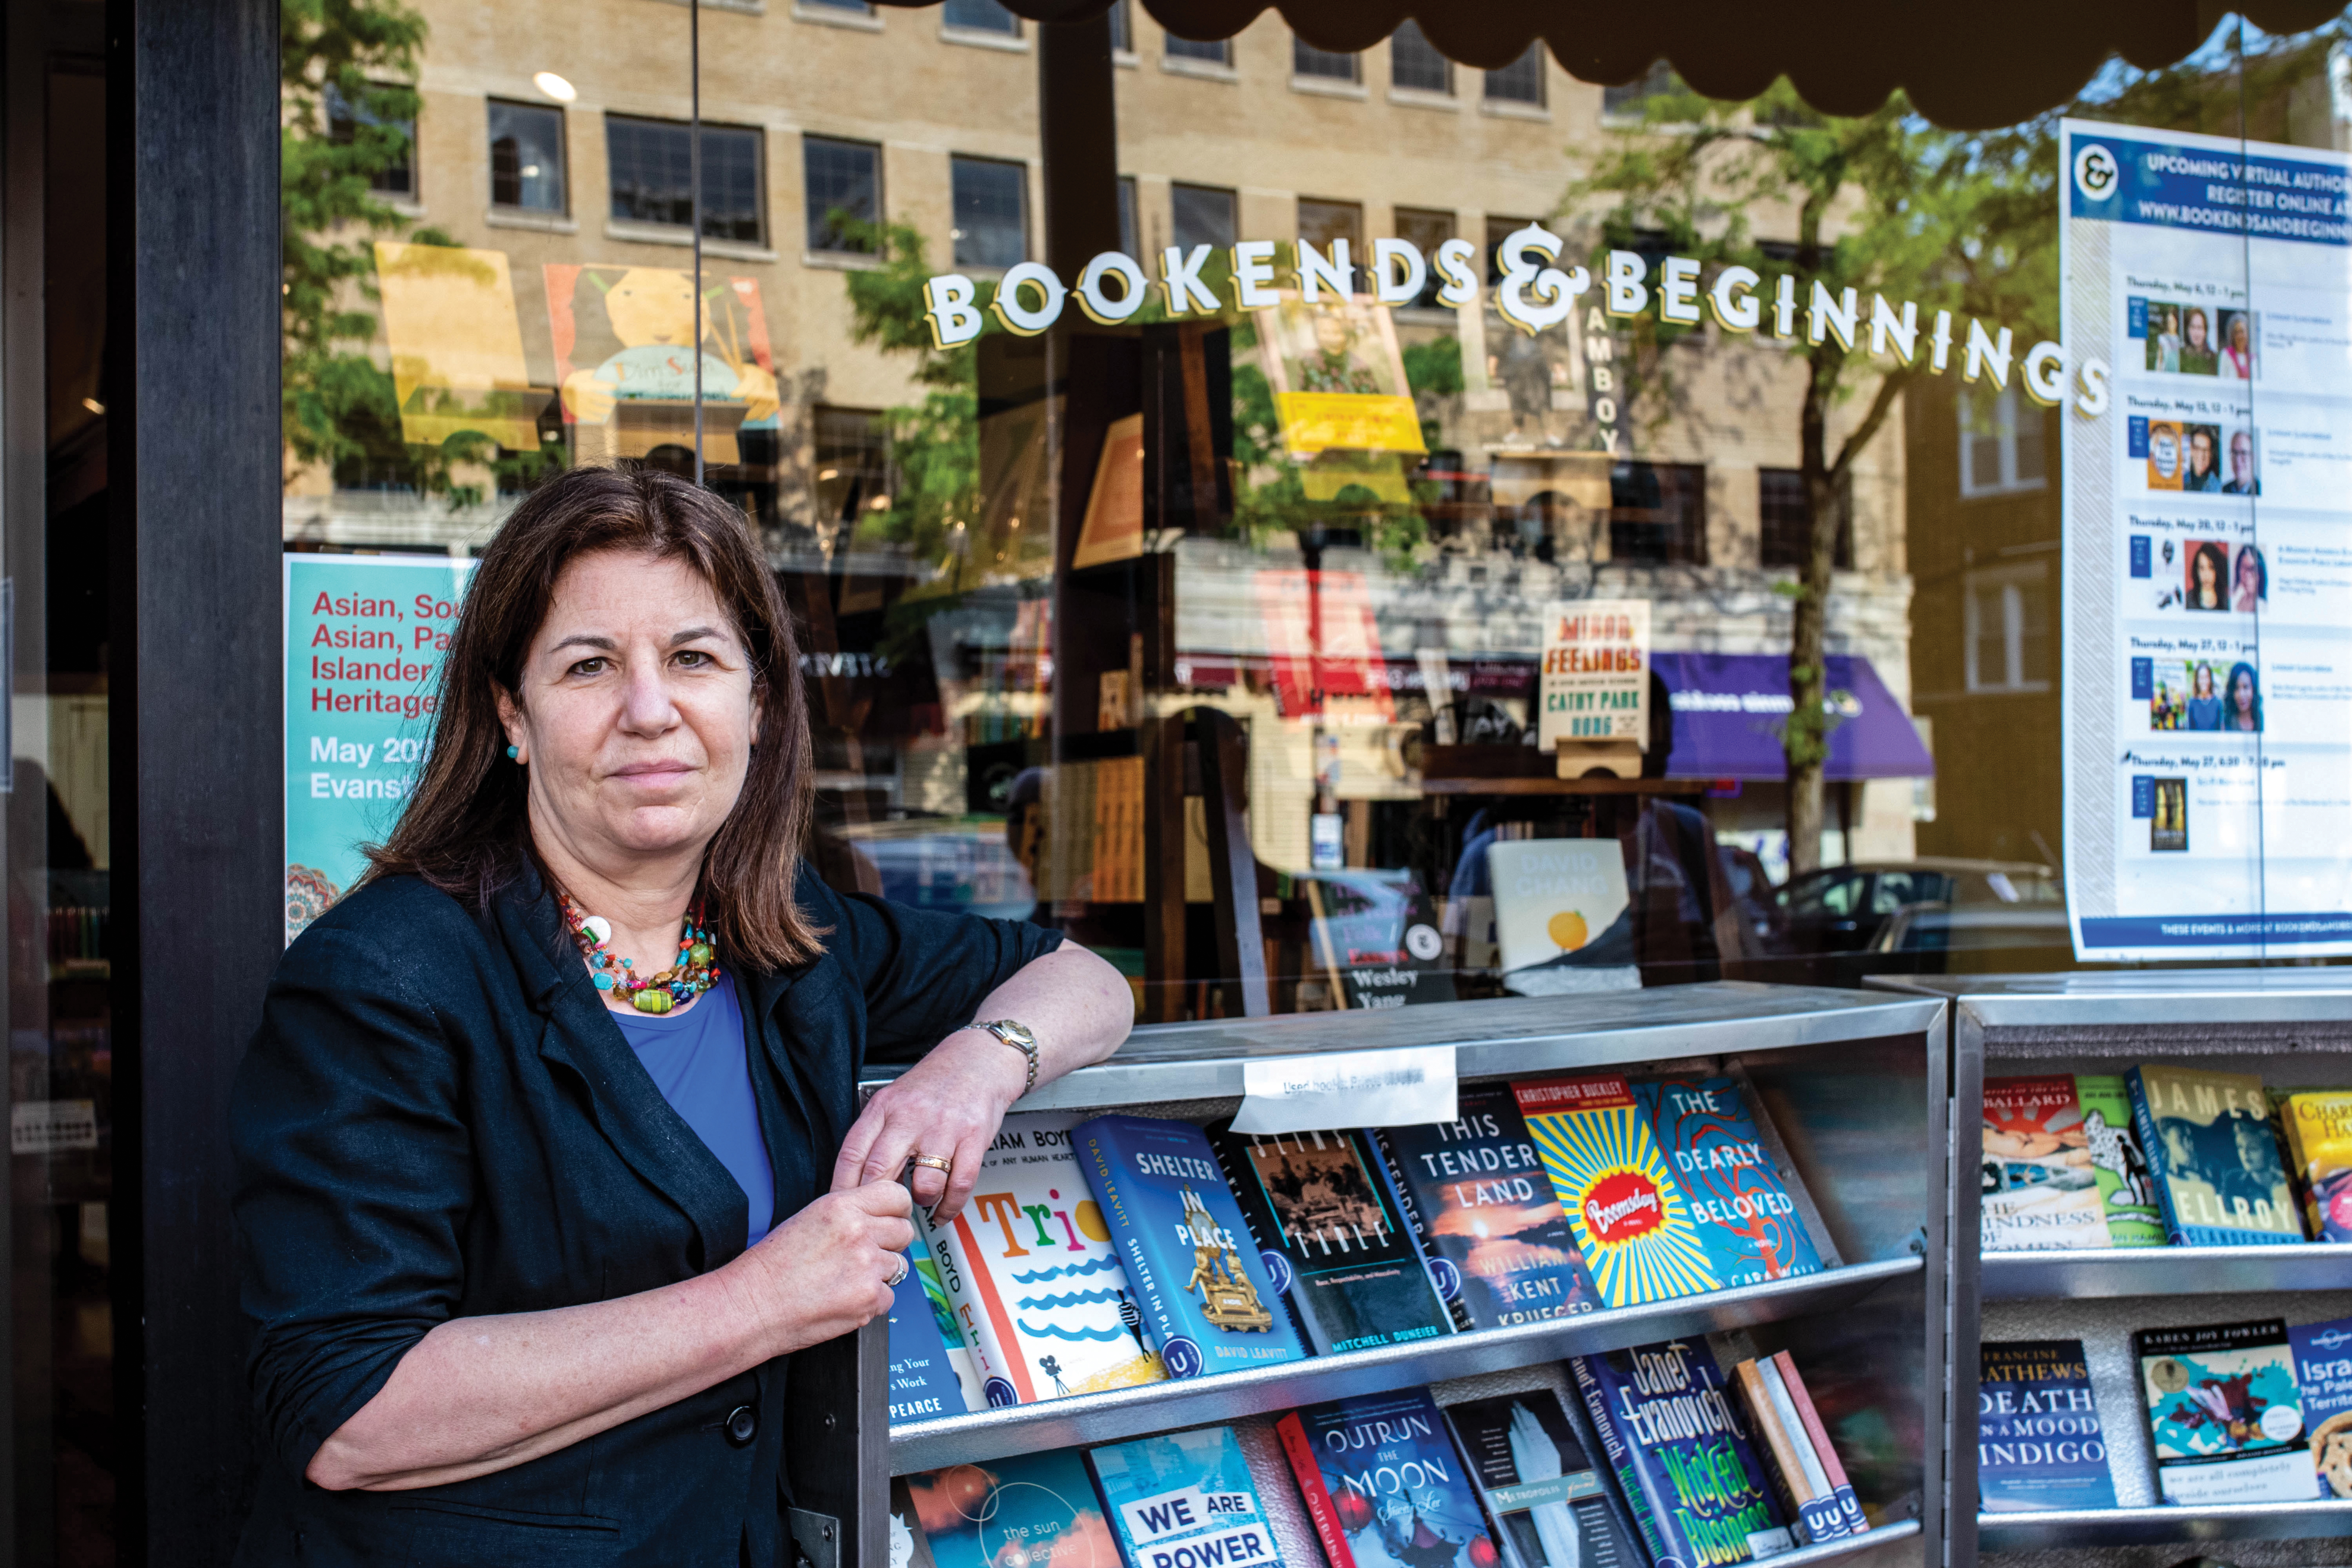 Nina Barrett, owner of Bookends & Beginnings, outside of the bookstore on May 22.